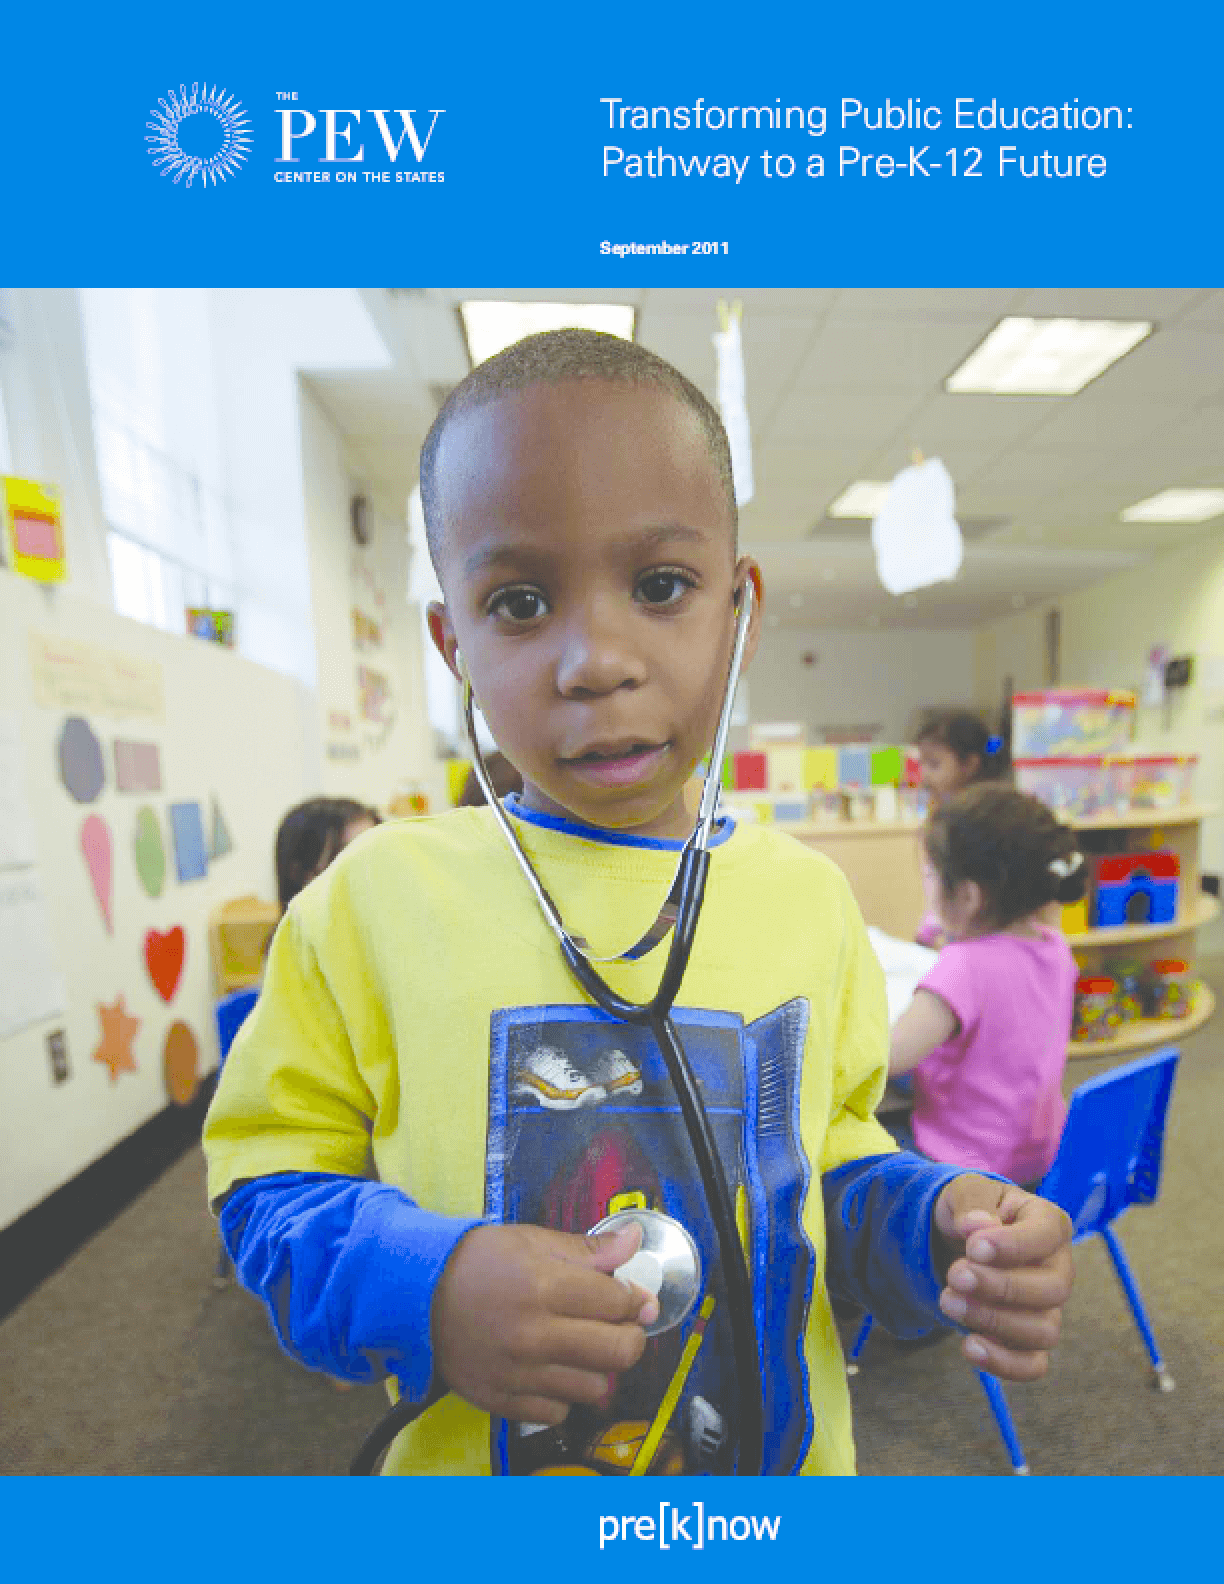 Transforming Public Education: Pathway to a Pre-K-12 Future